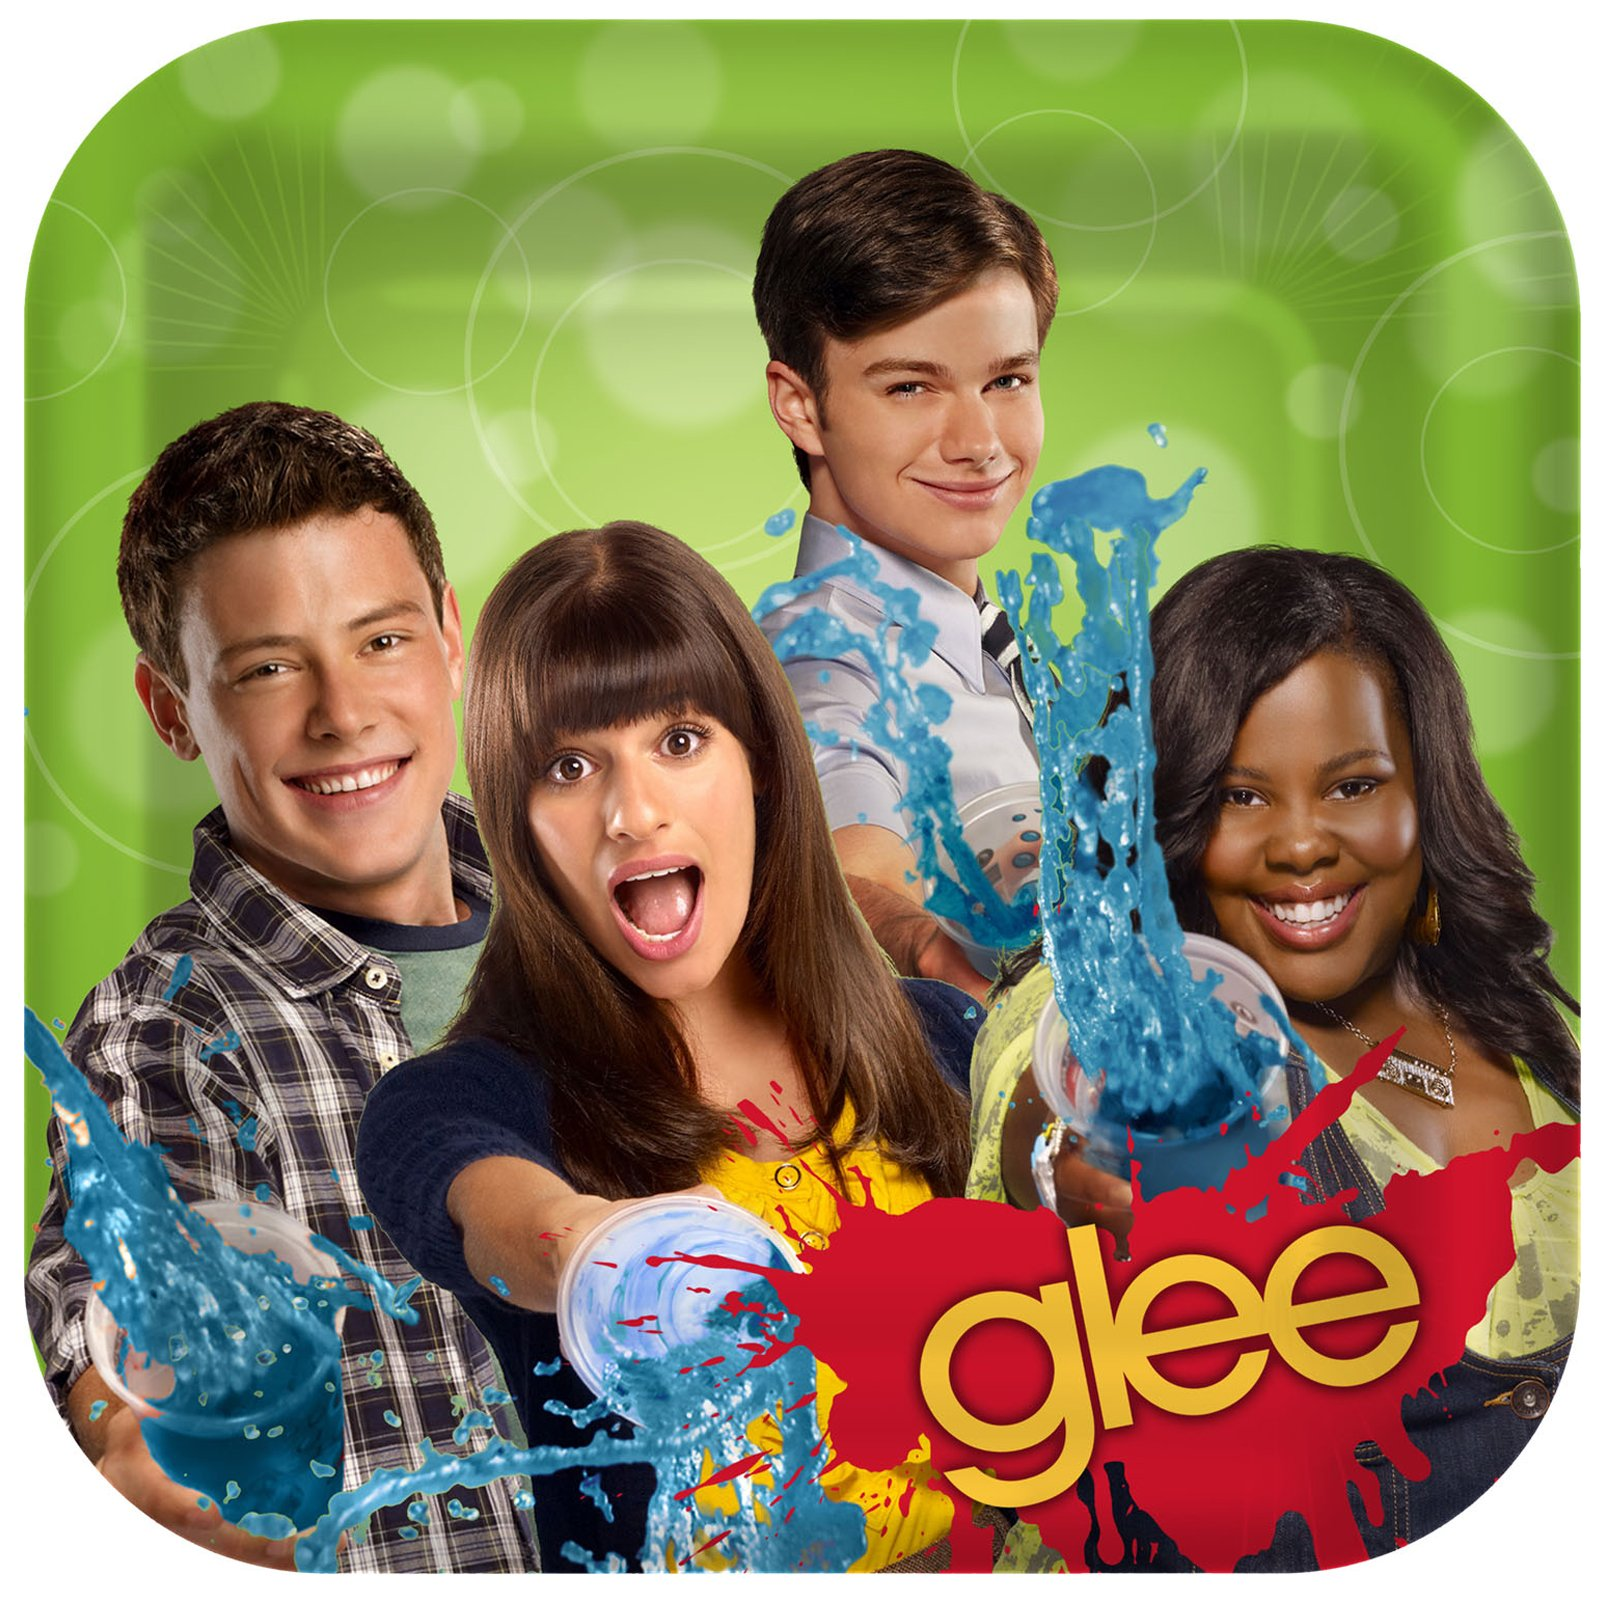 Glee Square Dinner Plates (8 count)